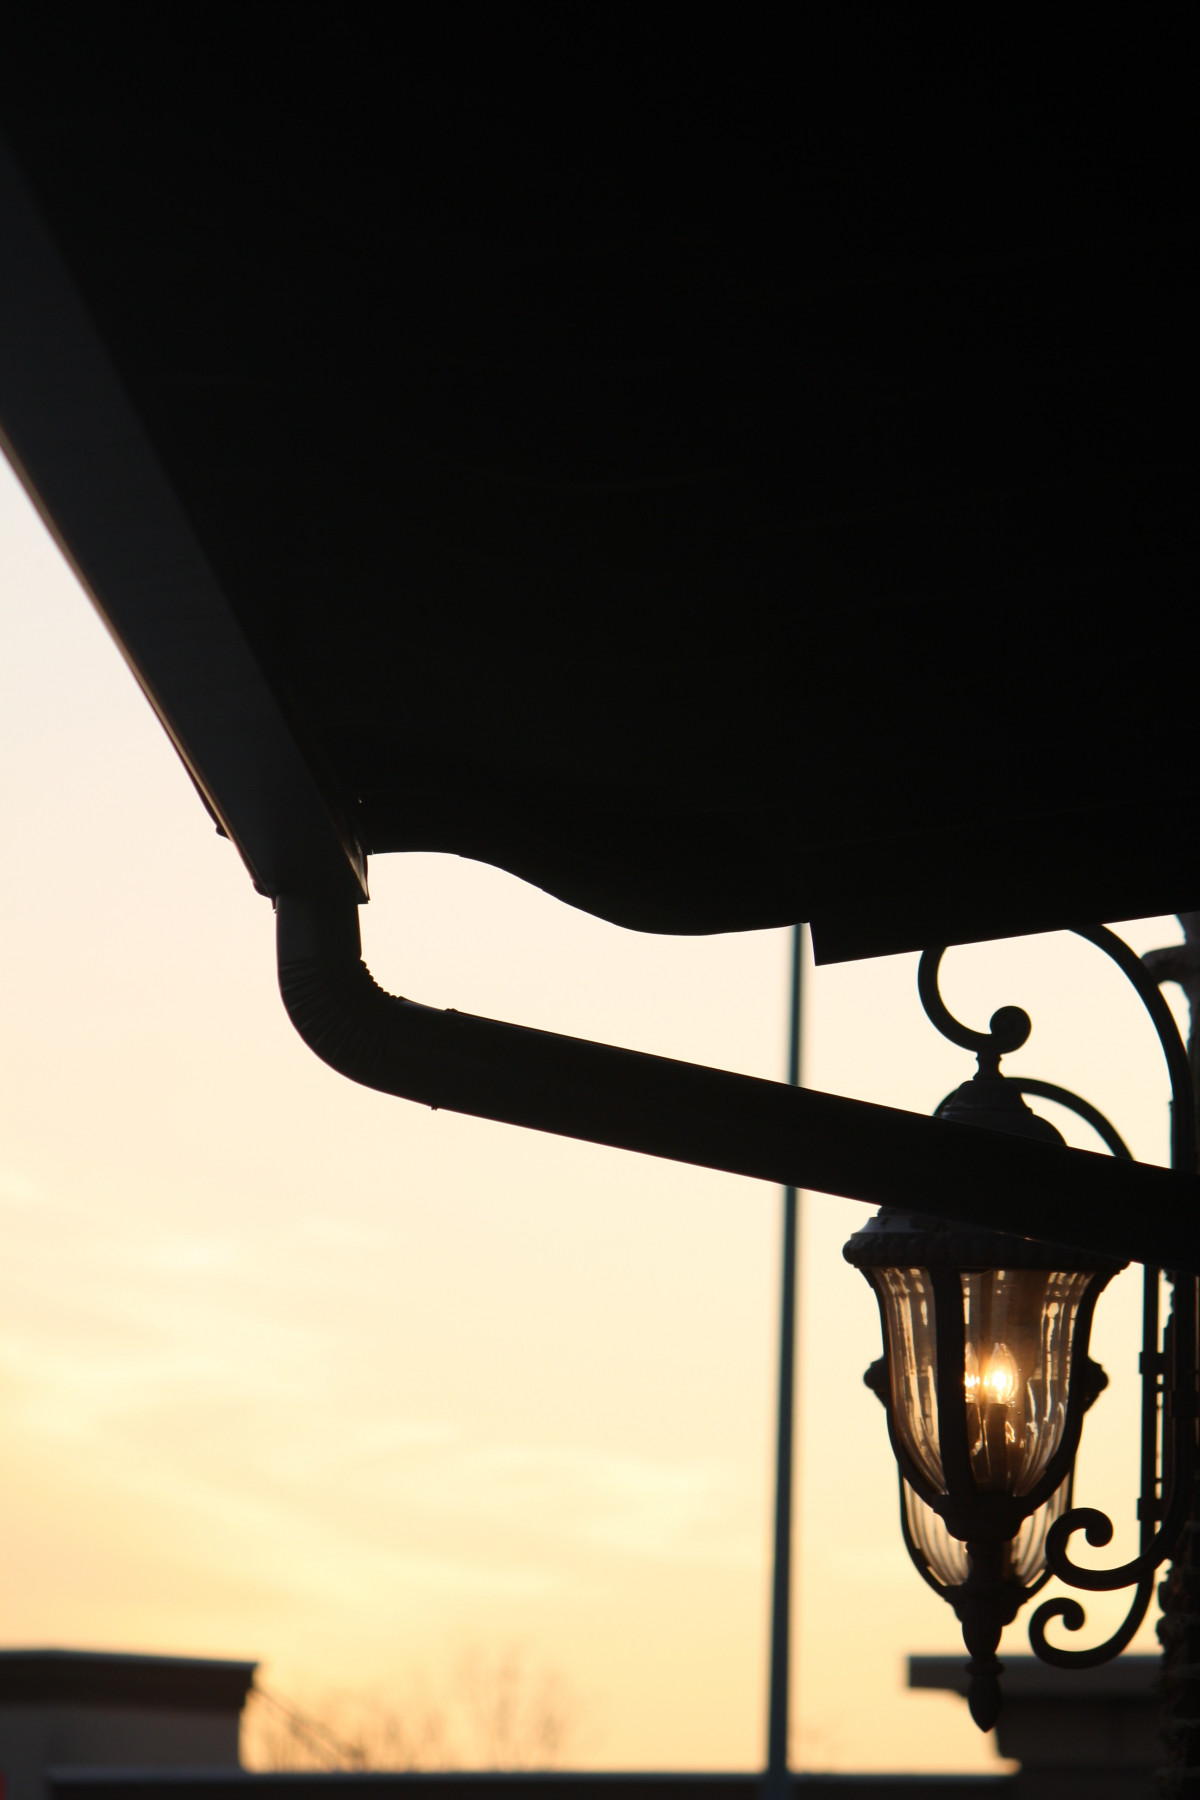 Indoor Street Light Lamp Free Images Night Window Glass Evening Reflection